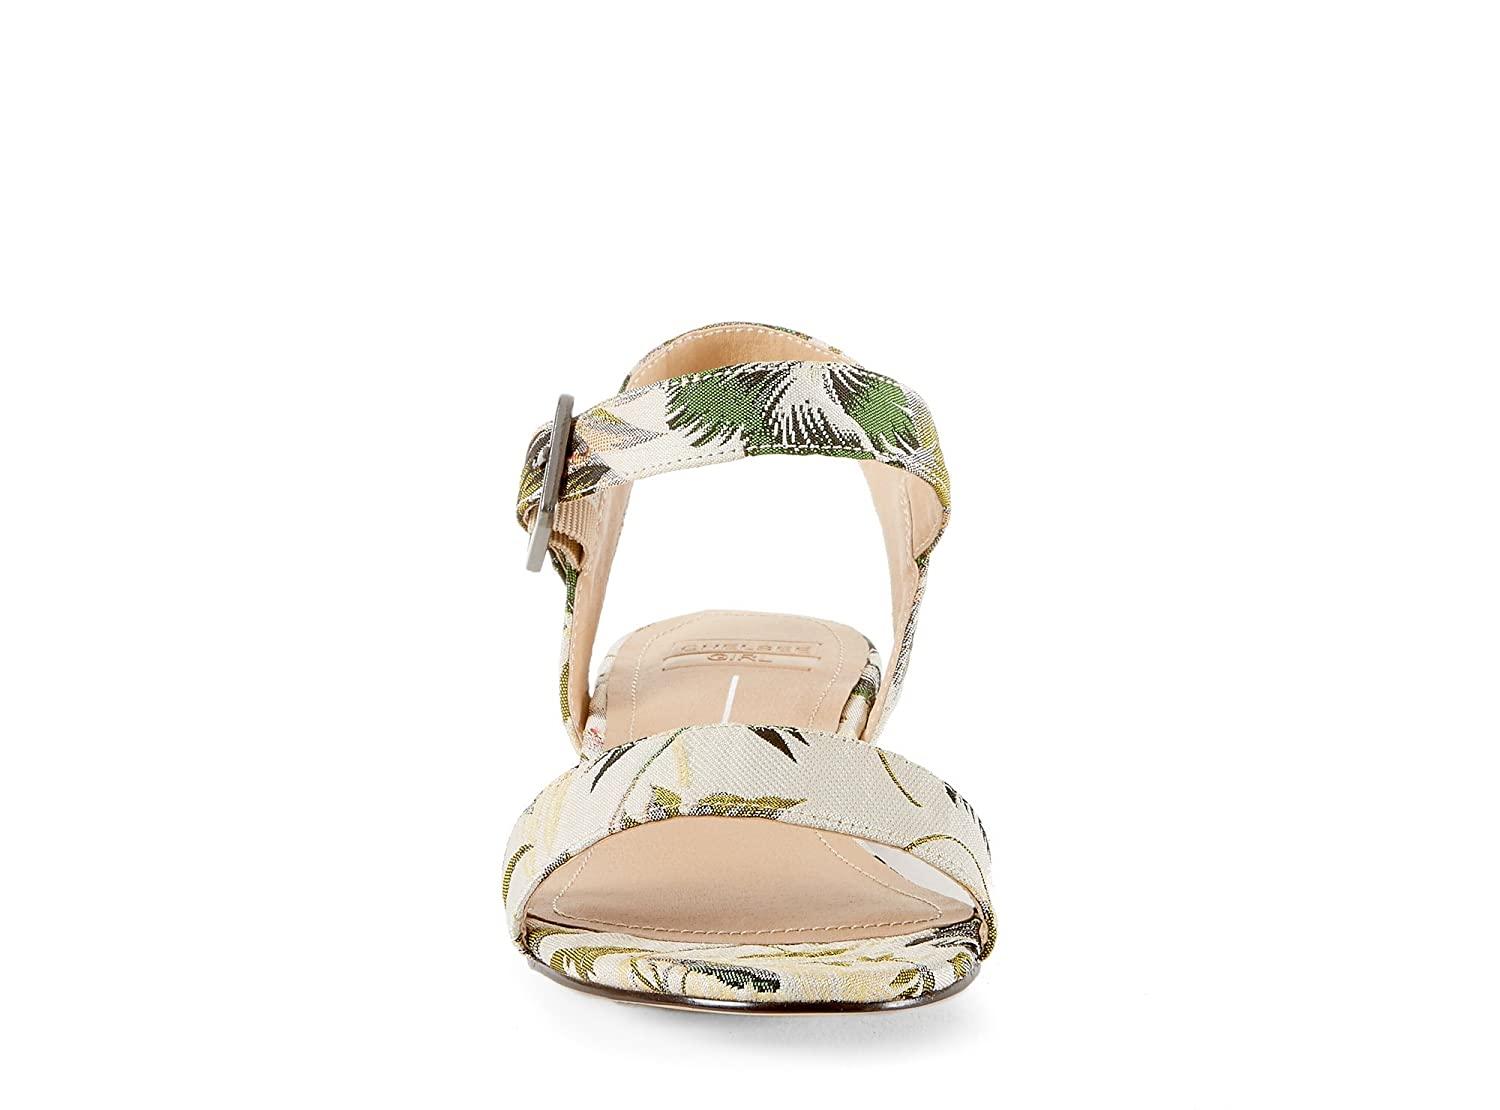 c61d253524a Yellow Shoes LAPAZ T Womens Low Block Heel Sandals - Casual   Comfortable -  Made from Microfiber - Perfect for Summer Multi Size 8  Amazon.ca  Shoes    ...